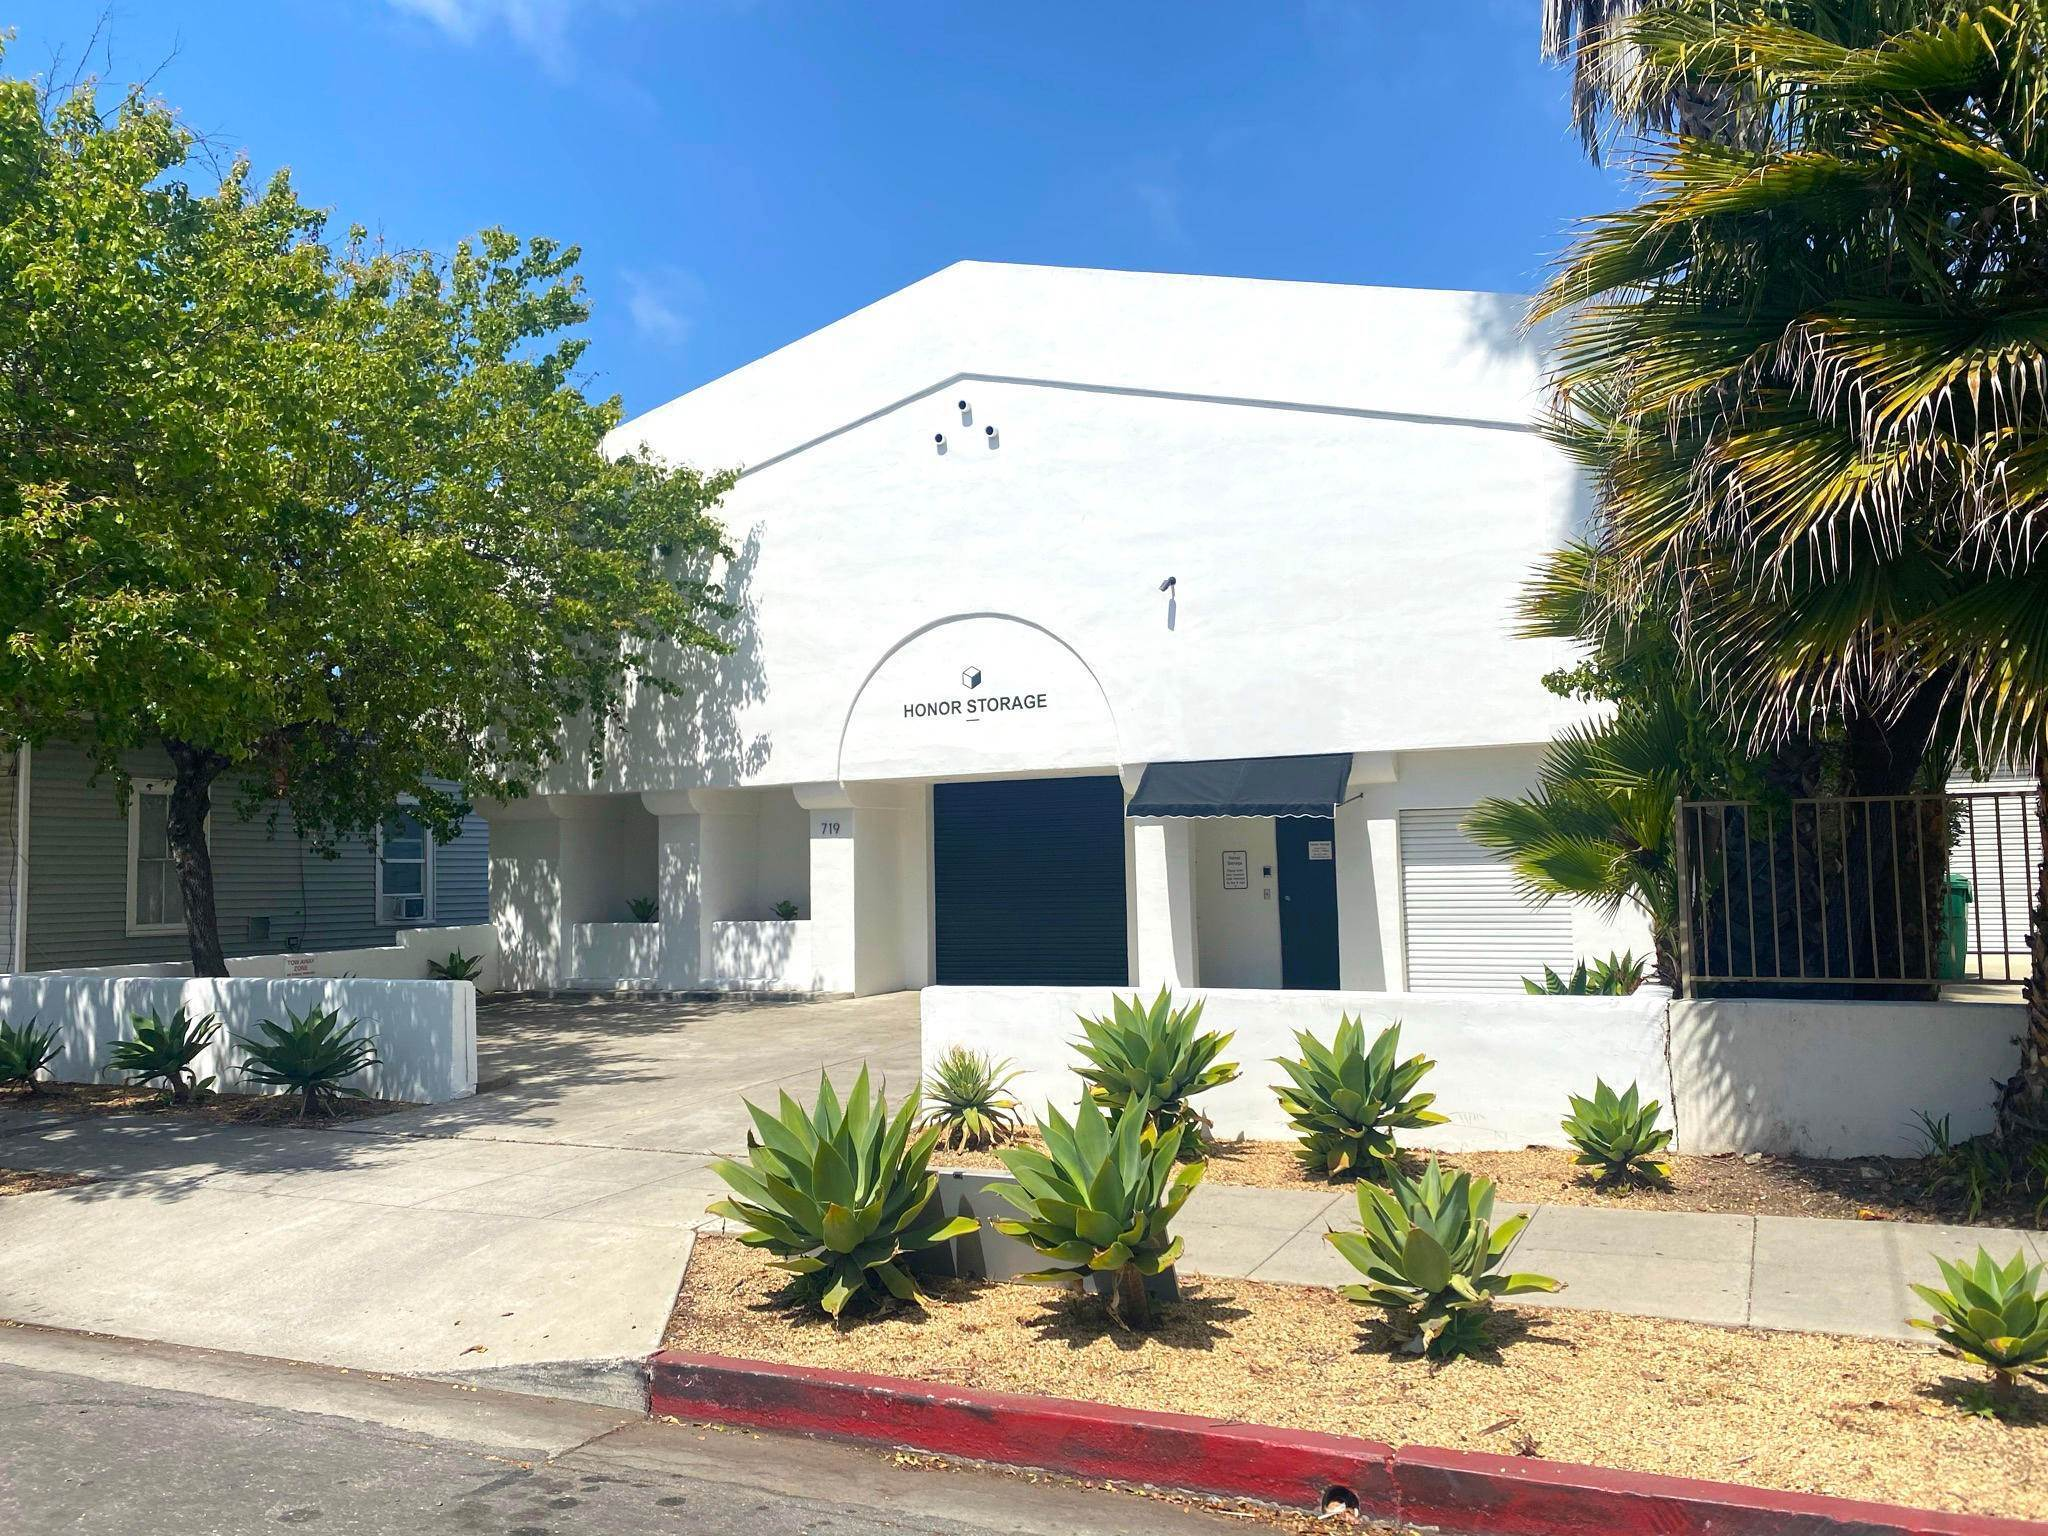 Commercial for Sale at 719 Bond Avenue Santa Barbara, California 93103 United States